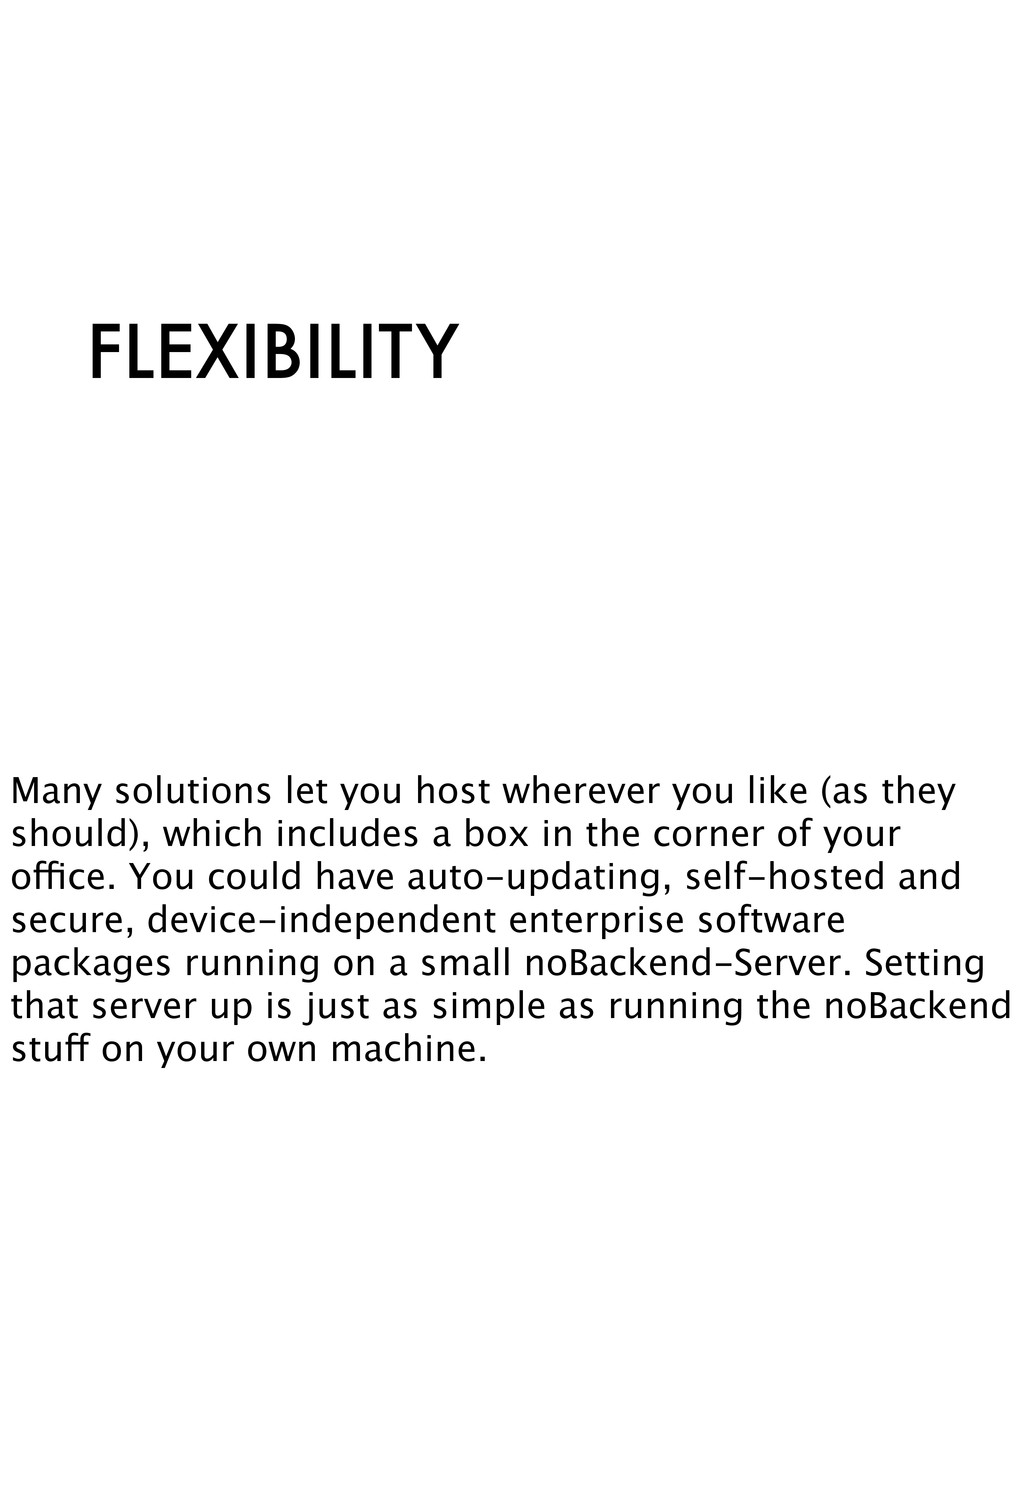 FLEXIBILITY Many solutions let you host whereve...